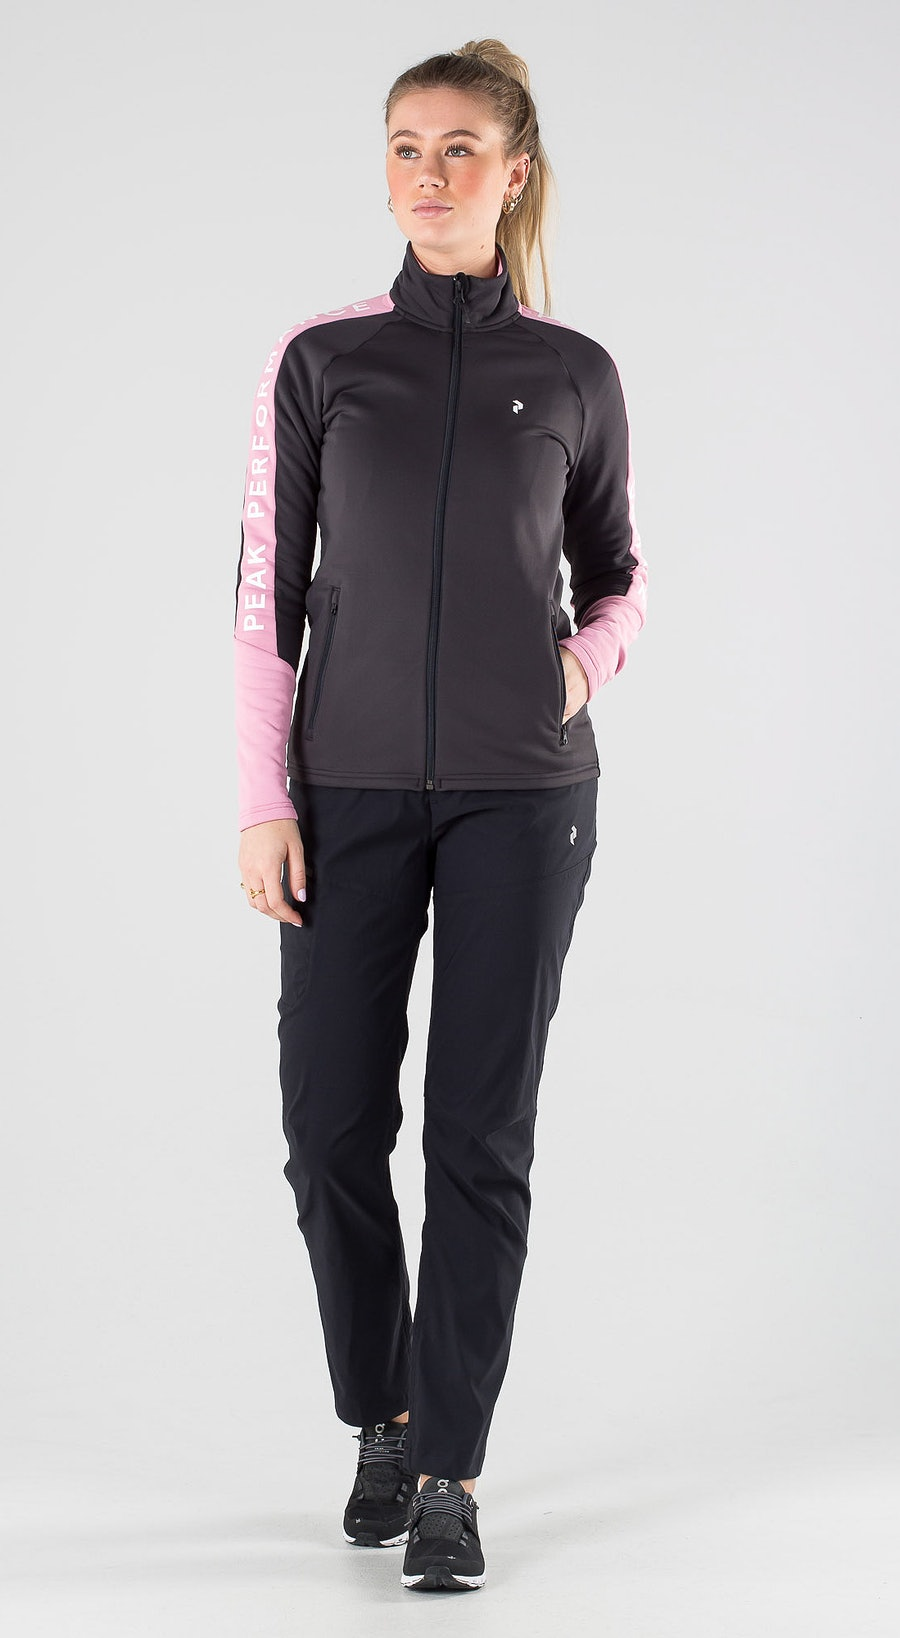 Peak Performance Rider Zip Iron Cast Outfit Multi